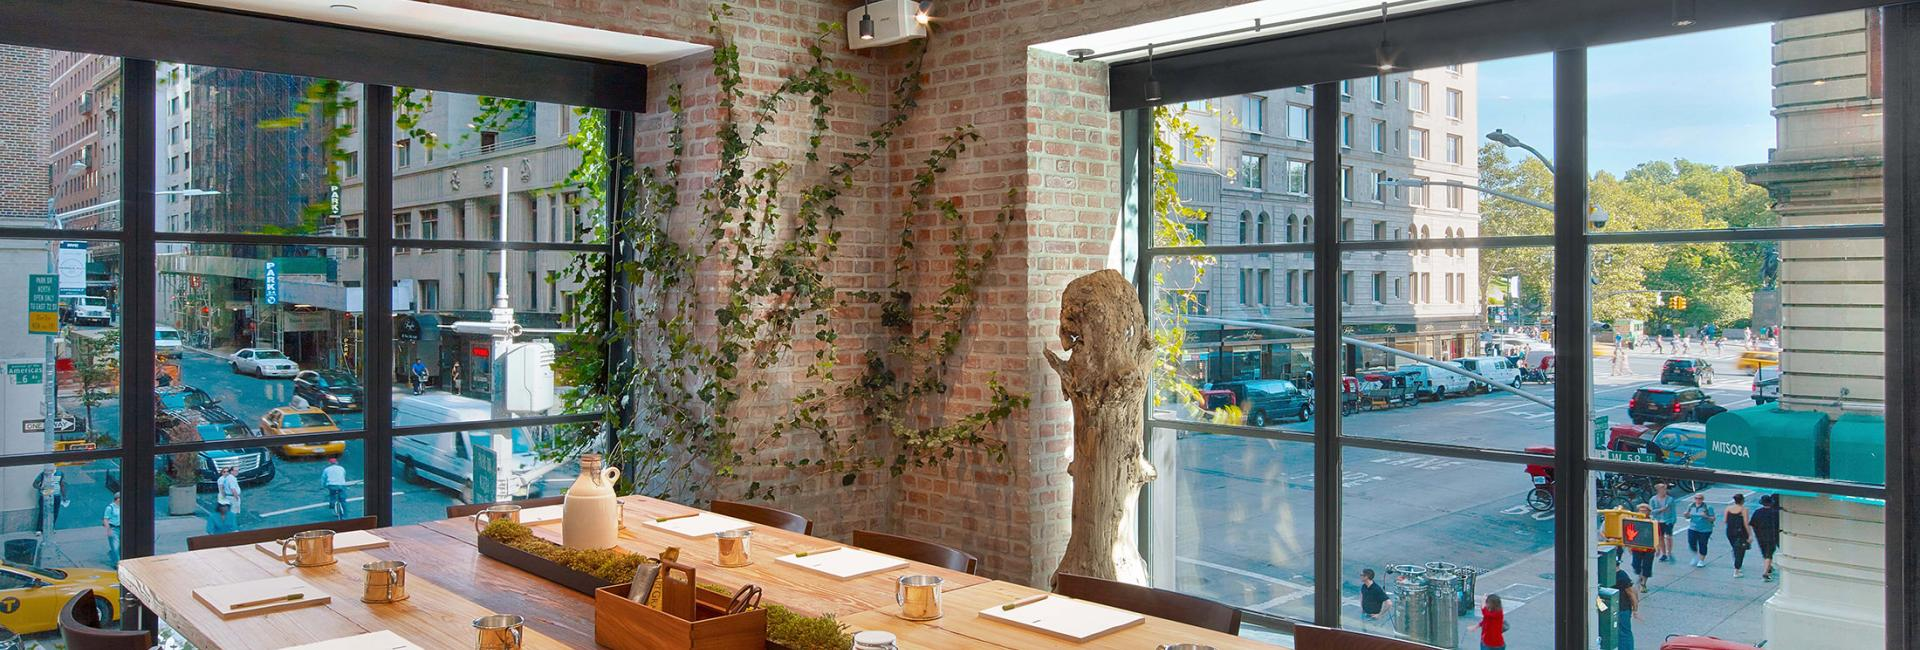 A long wooden dinner table in a room with windows overlooking NYC streets.